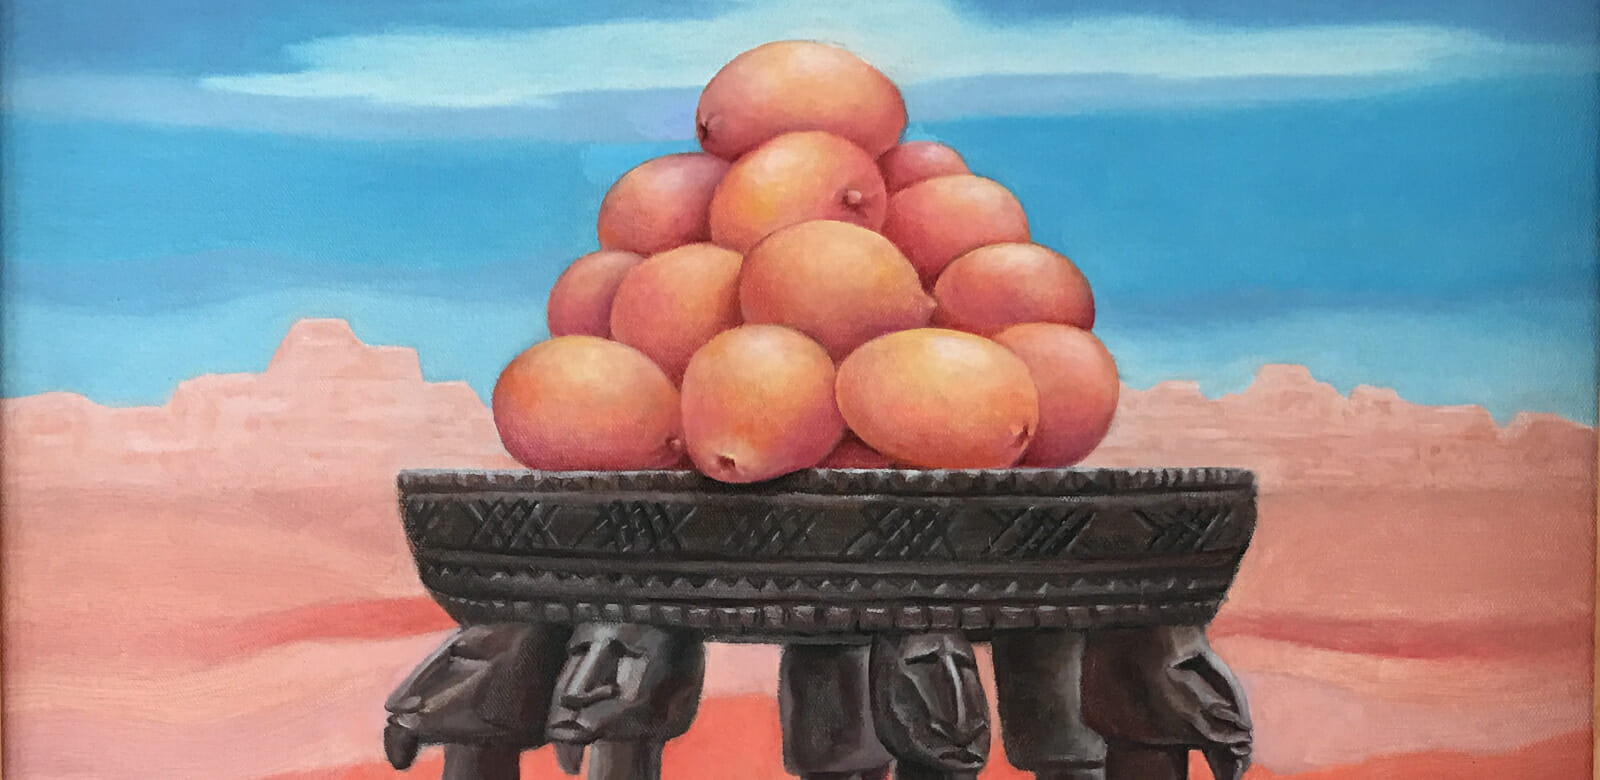 Detail from painting of stacked oranges in a desert landscape